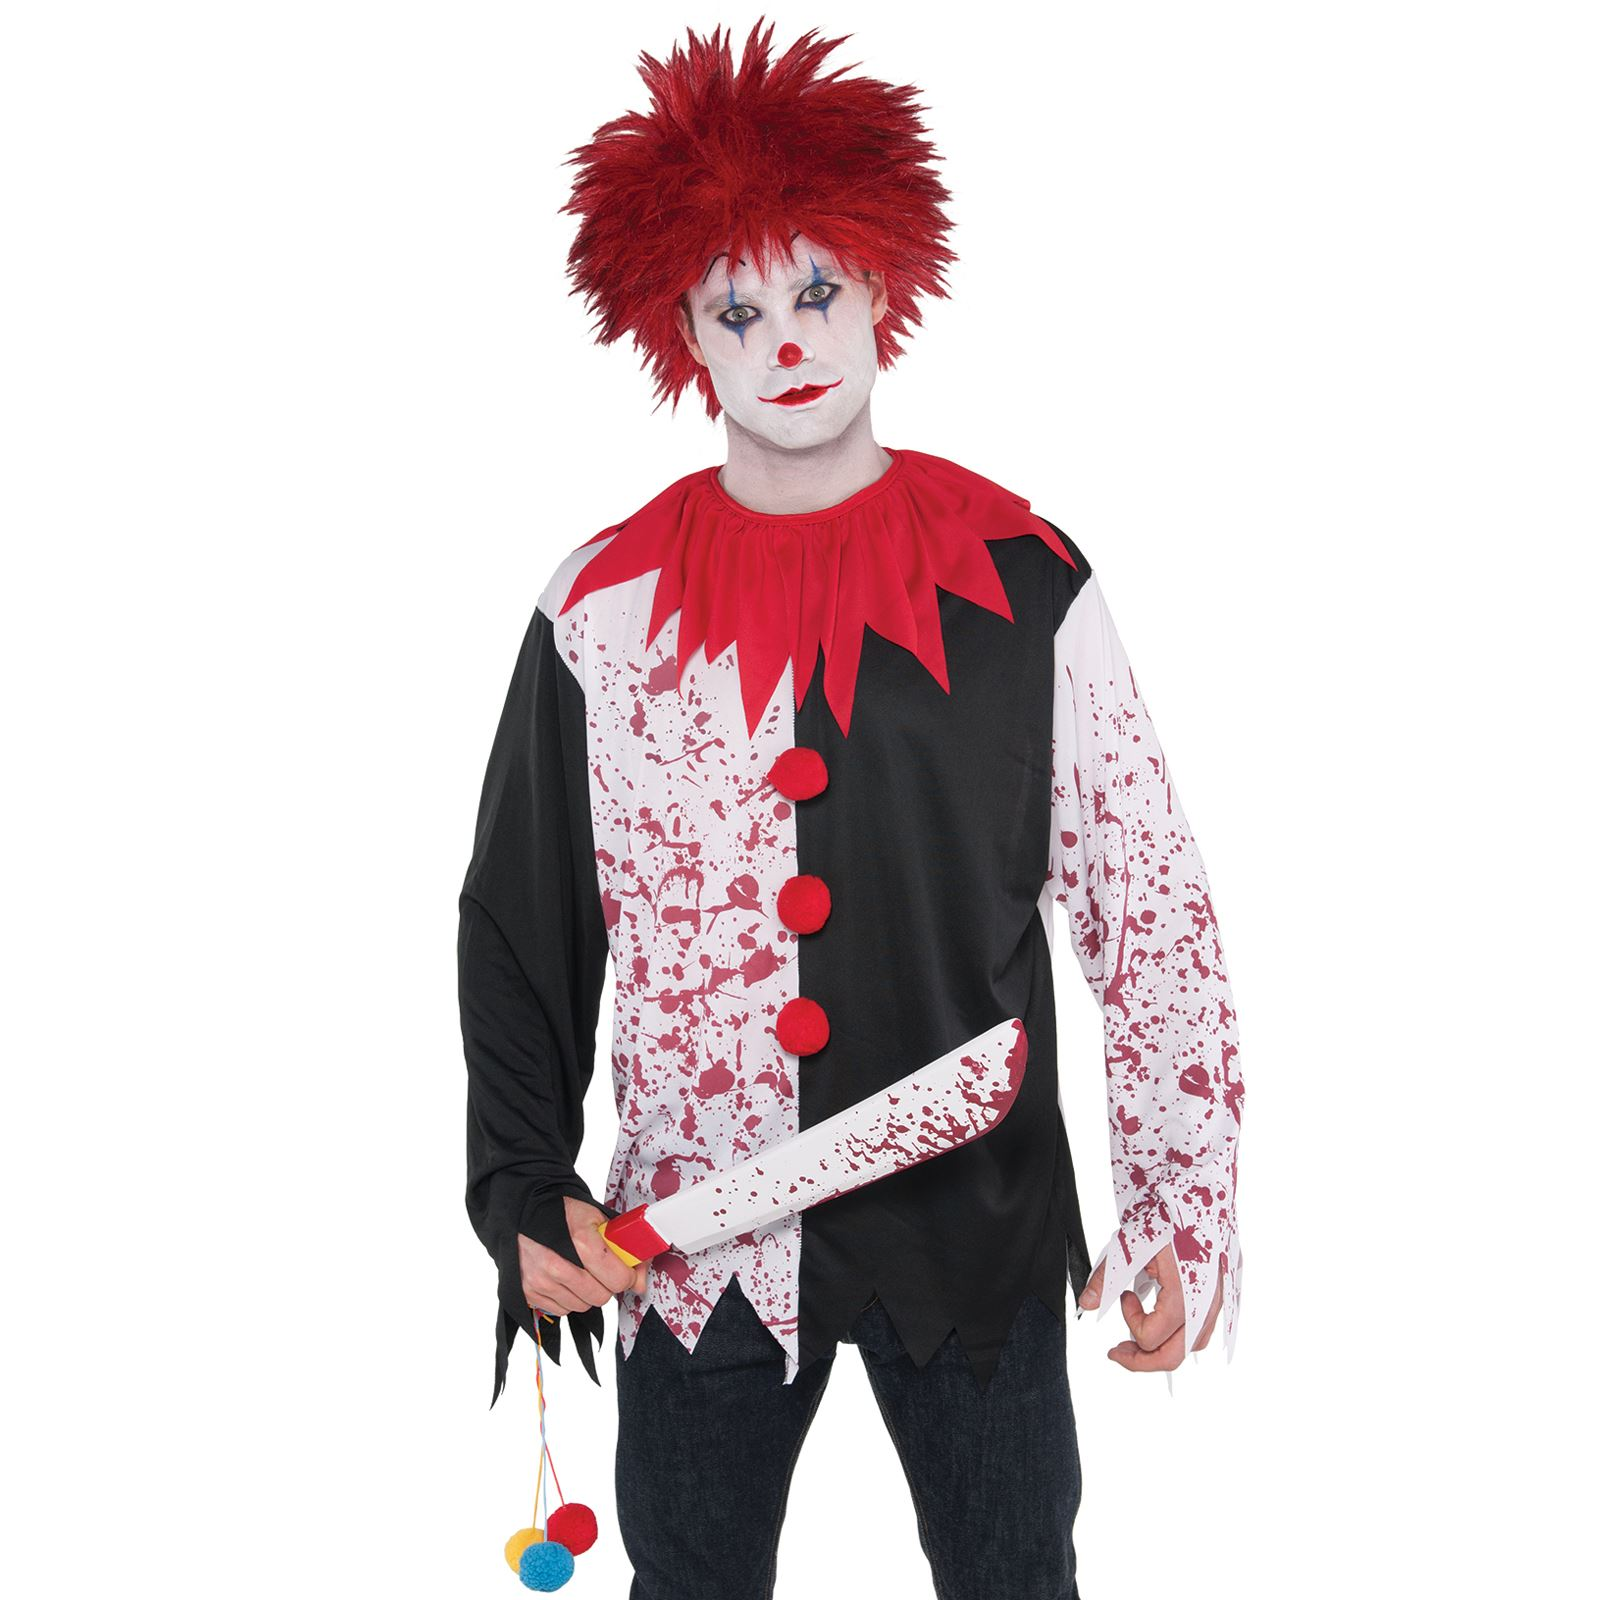 White Bloody Suit Mens Fancy Dress Gory Halloween Horror Killer Adults Costume